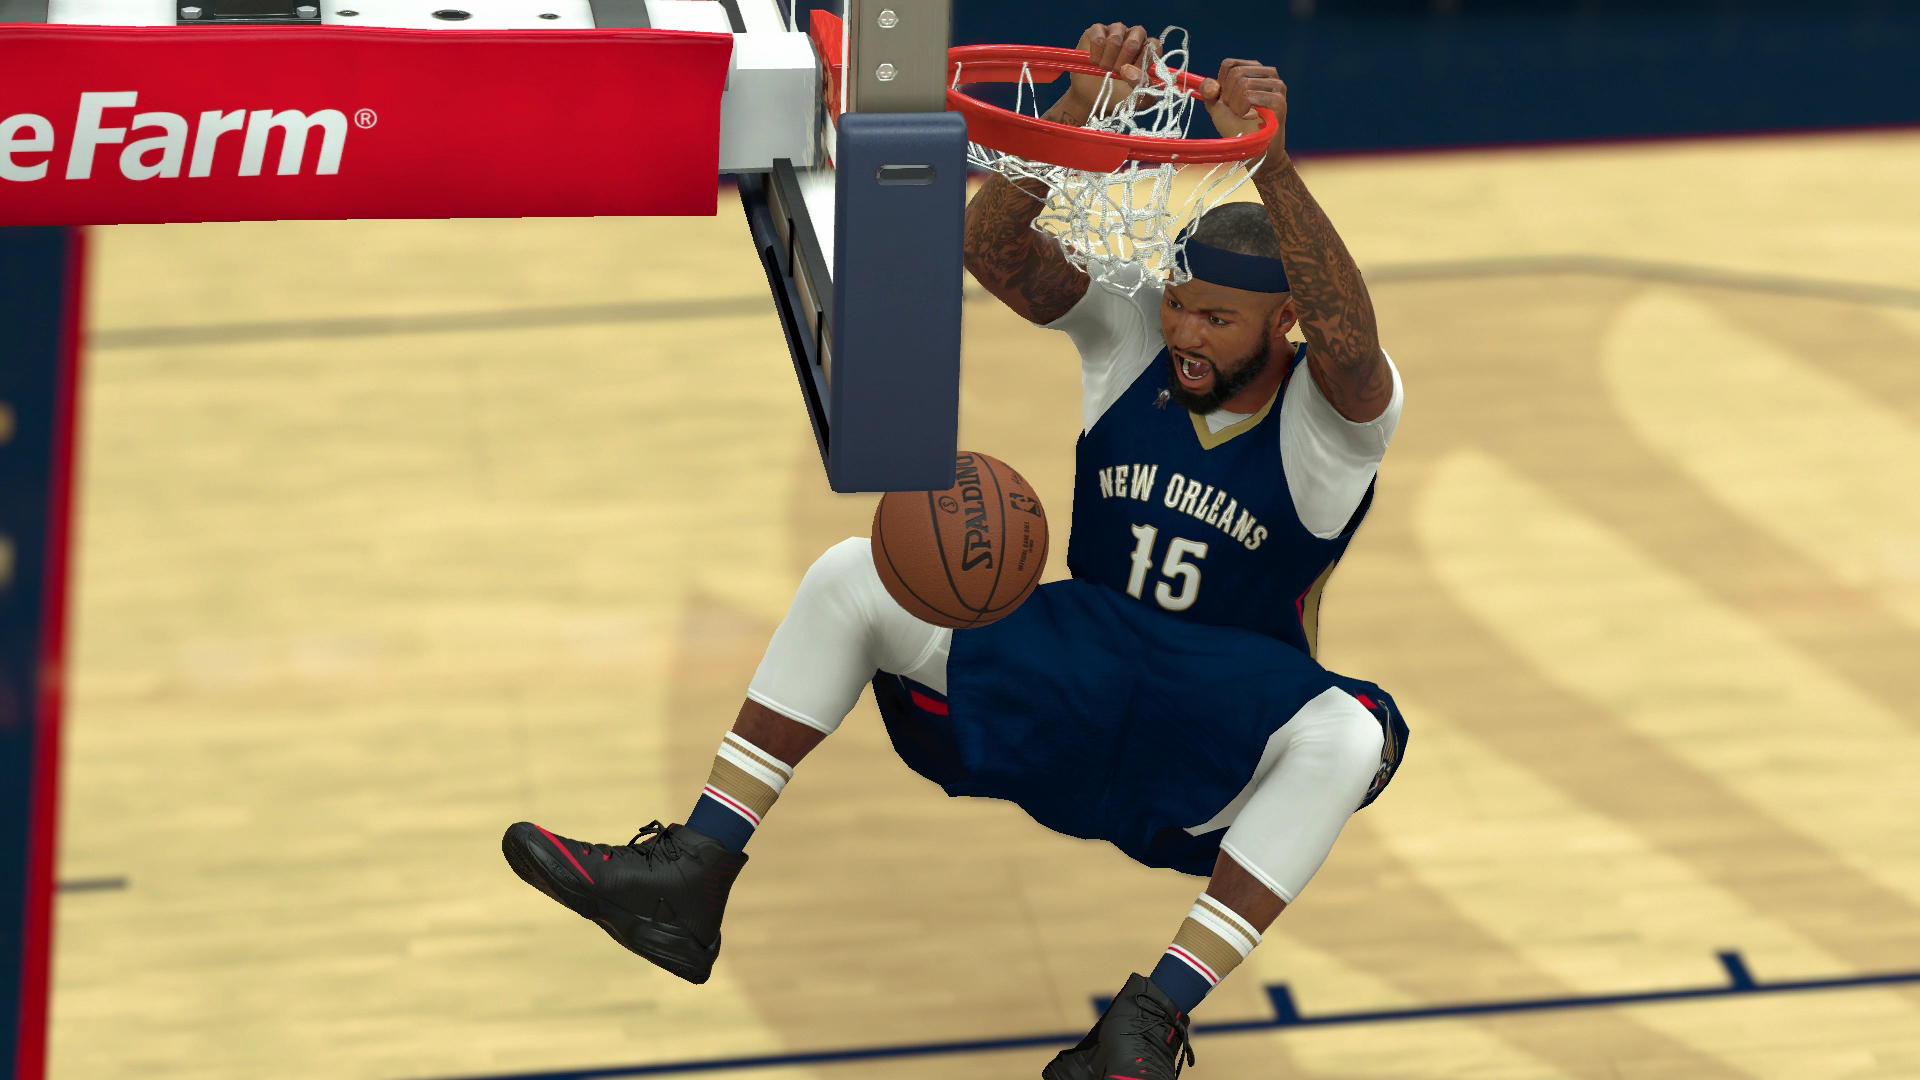 DeMarcus Cousins trade shakes up NBA 2K17 | pastapadre.com